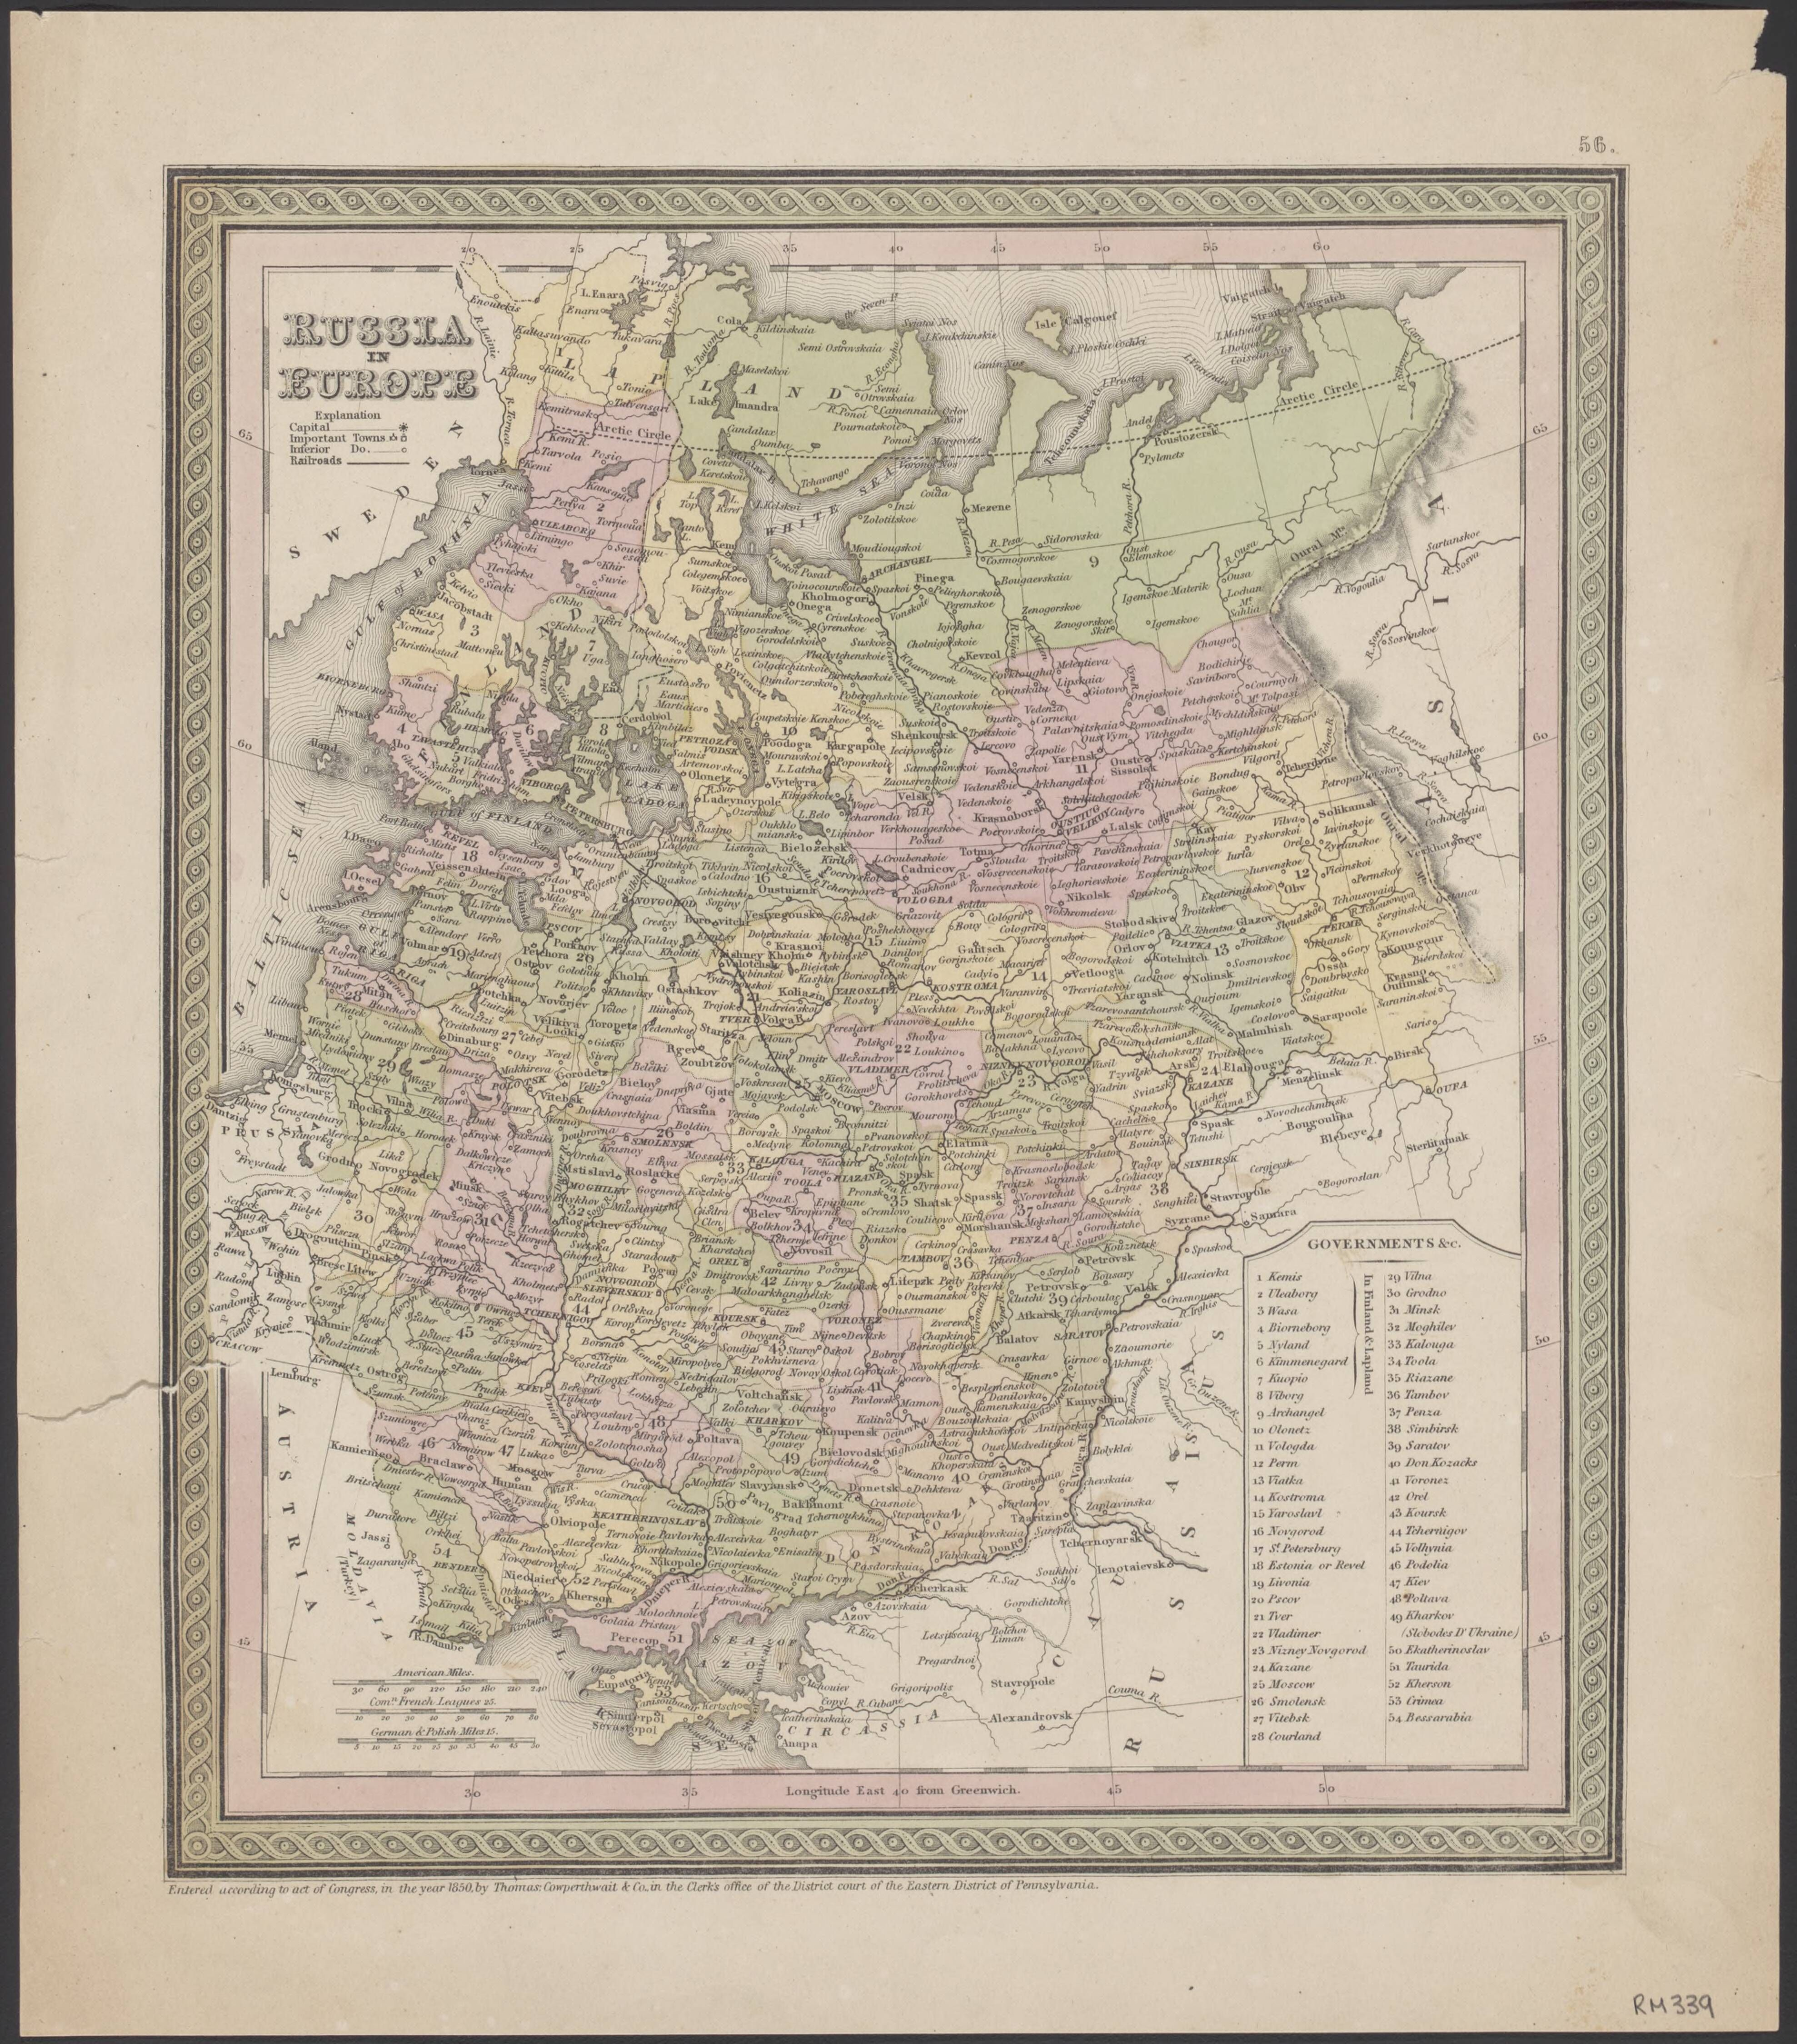 Russia in Europe, 1850 | mapmania | Imperial russia, Map, Europe